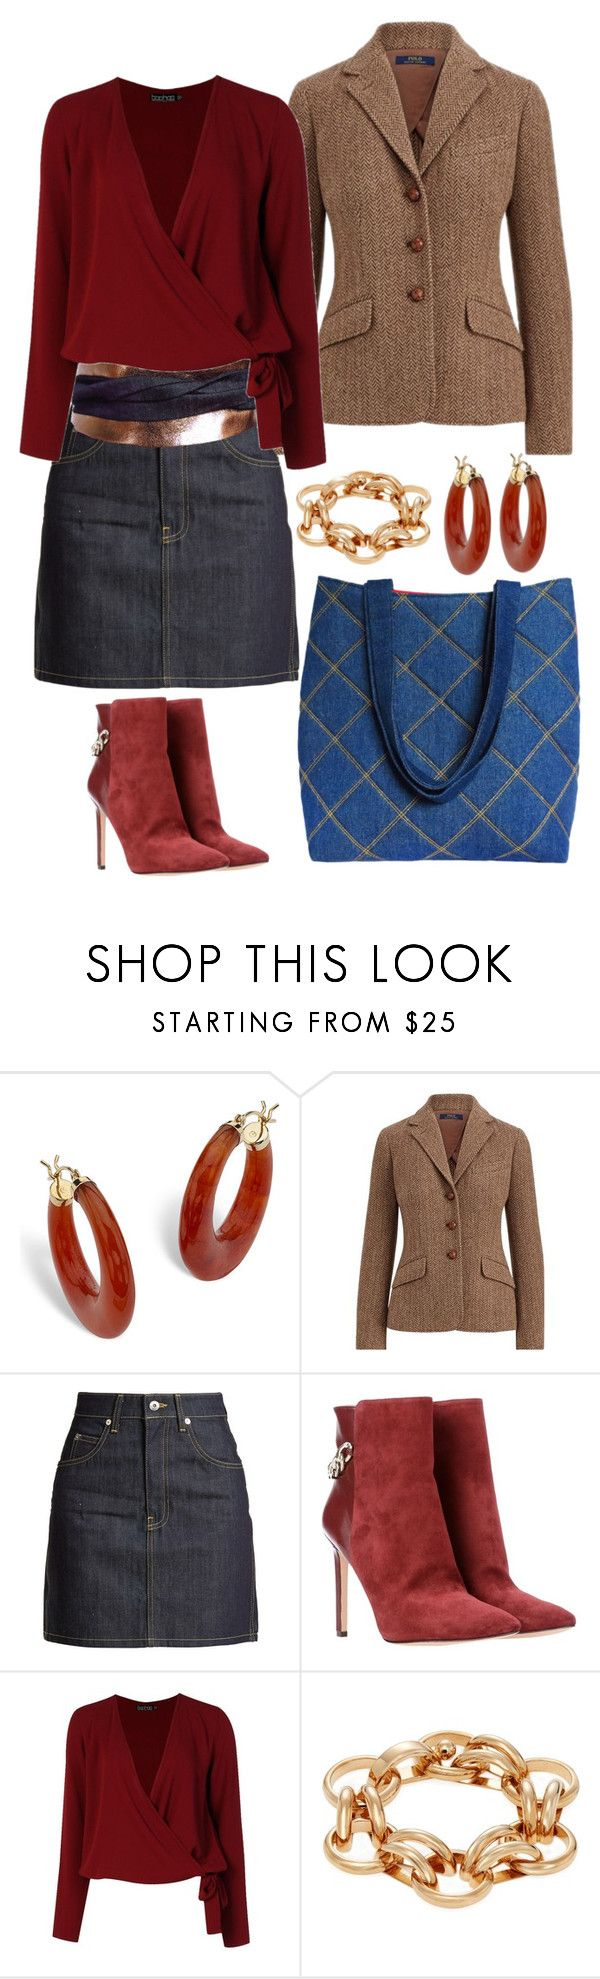 """dressed up denim mini skirt"" by hollandcox ❤ liked on Polyvore featuring Palm Beach Jewelry, Polo Ralph Lauren, Eve Denim, Nine West, Boohoo, Vita Fede, WorkWear and metallic"